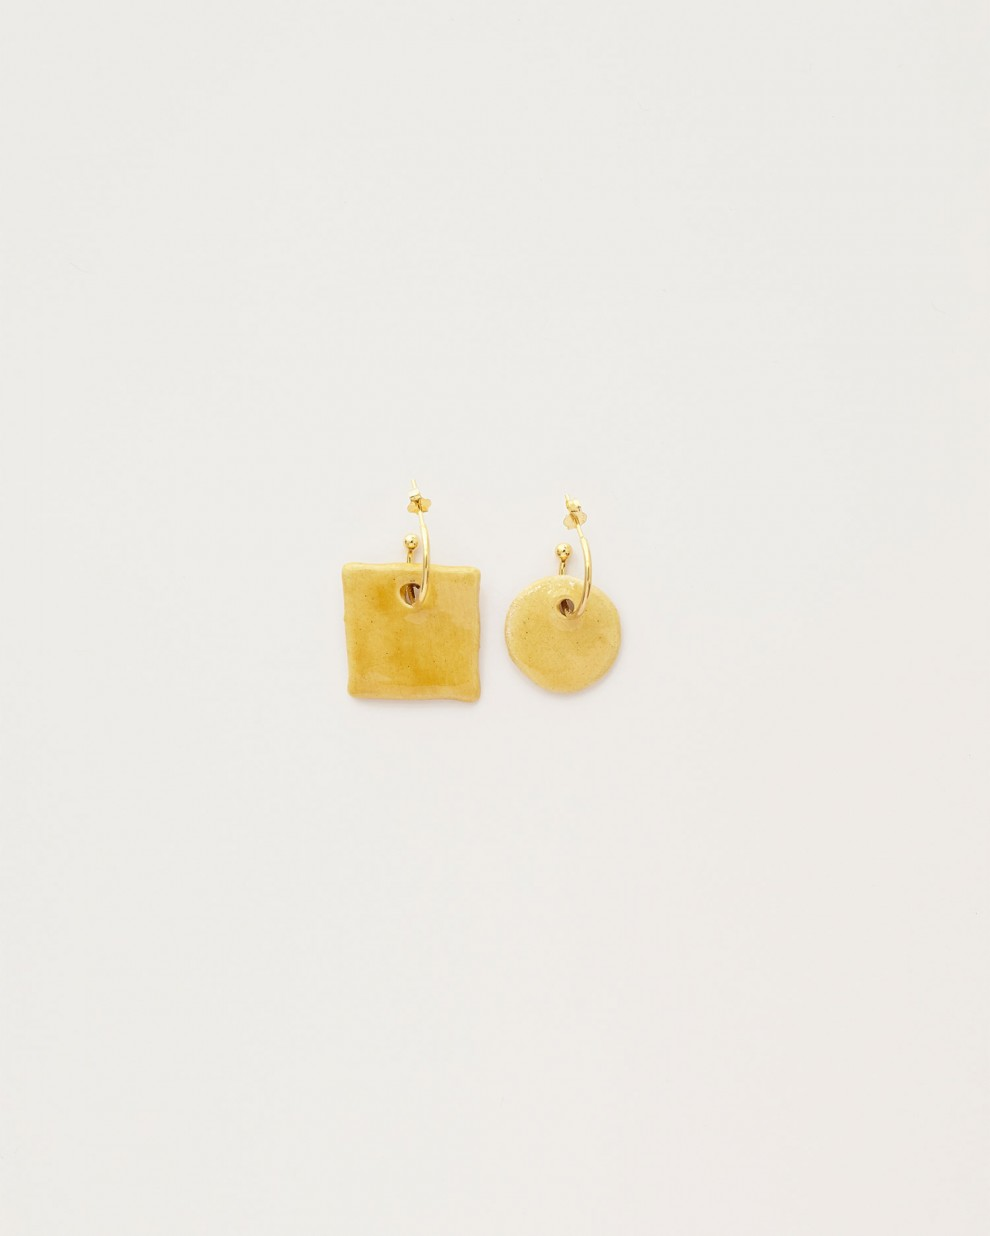 Asymmetric yellow earrings